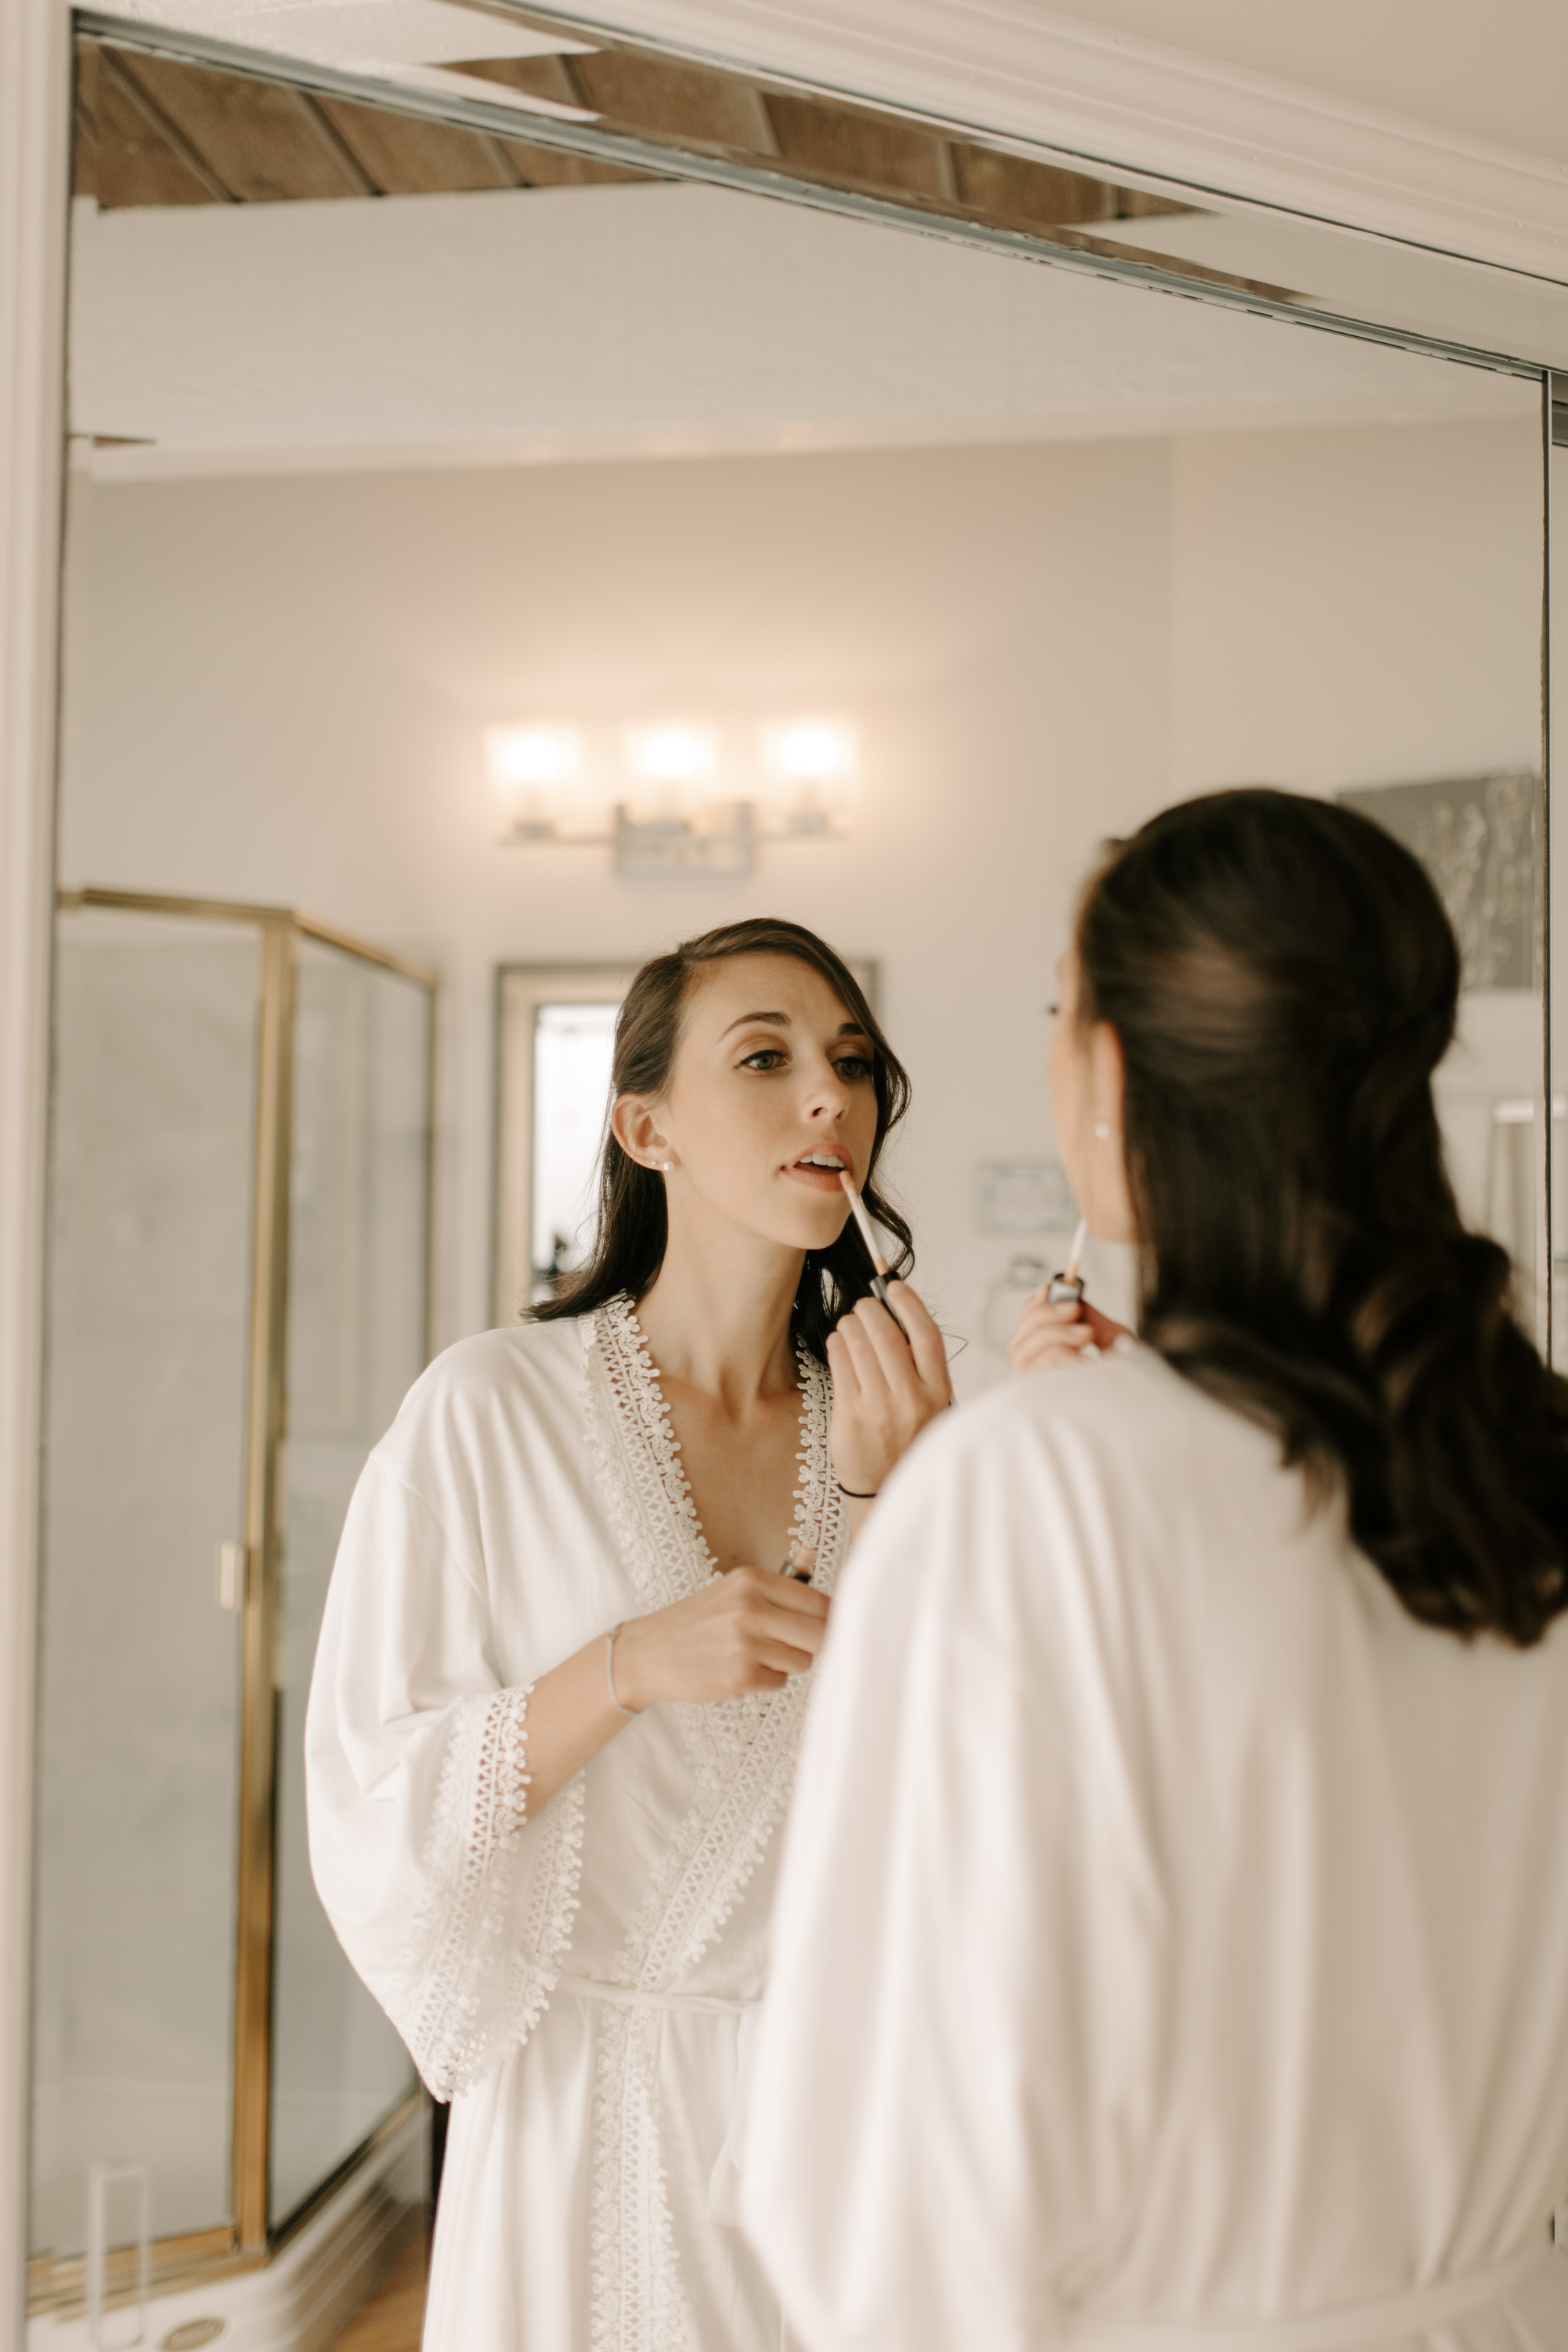 Bride Getting Ready- Laie Point Backyard Wedding By Hawaii Wedding Photographer Desiree Leilani